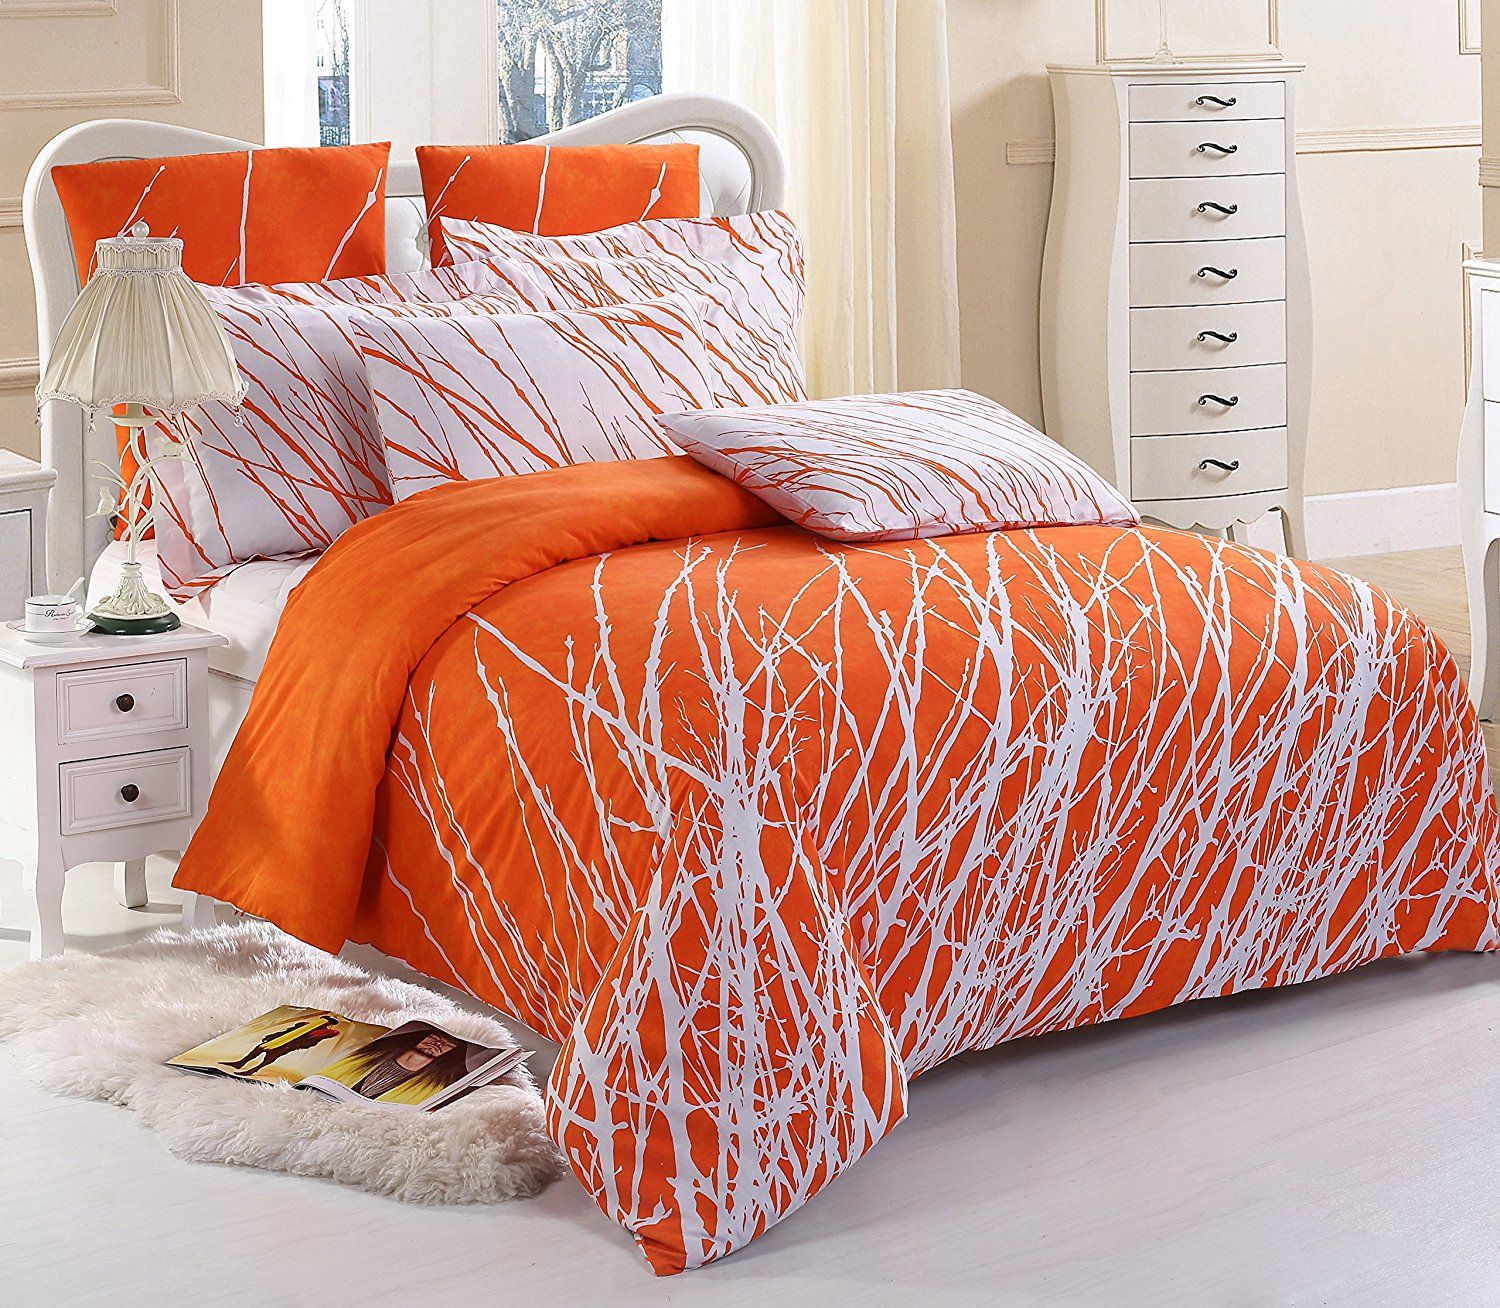 Bedding jardin collection bedding collections bed amp bath macy s - Orange Bedding Sets